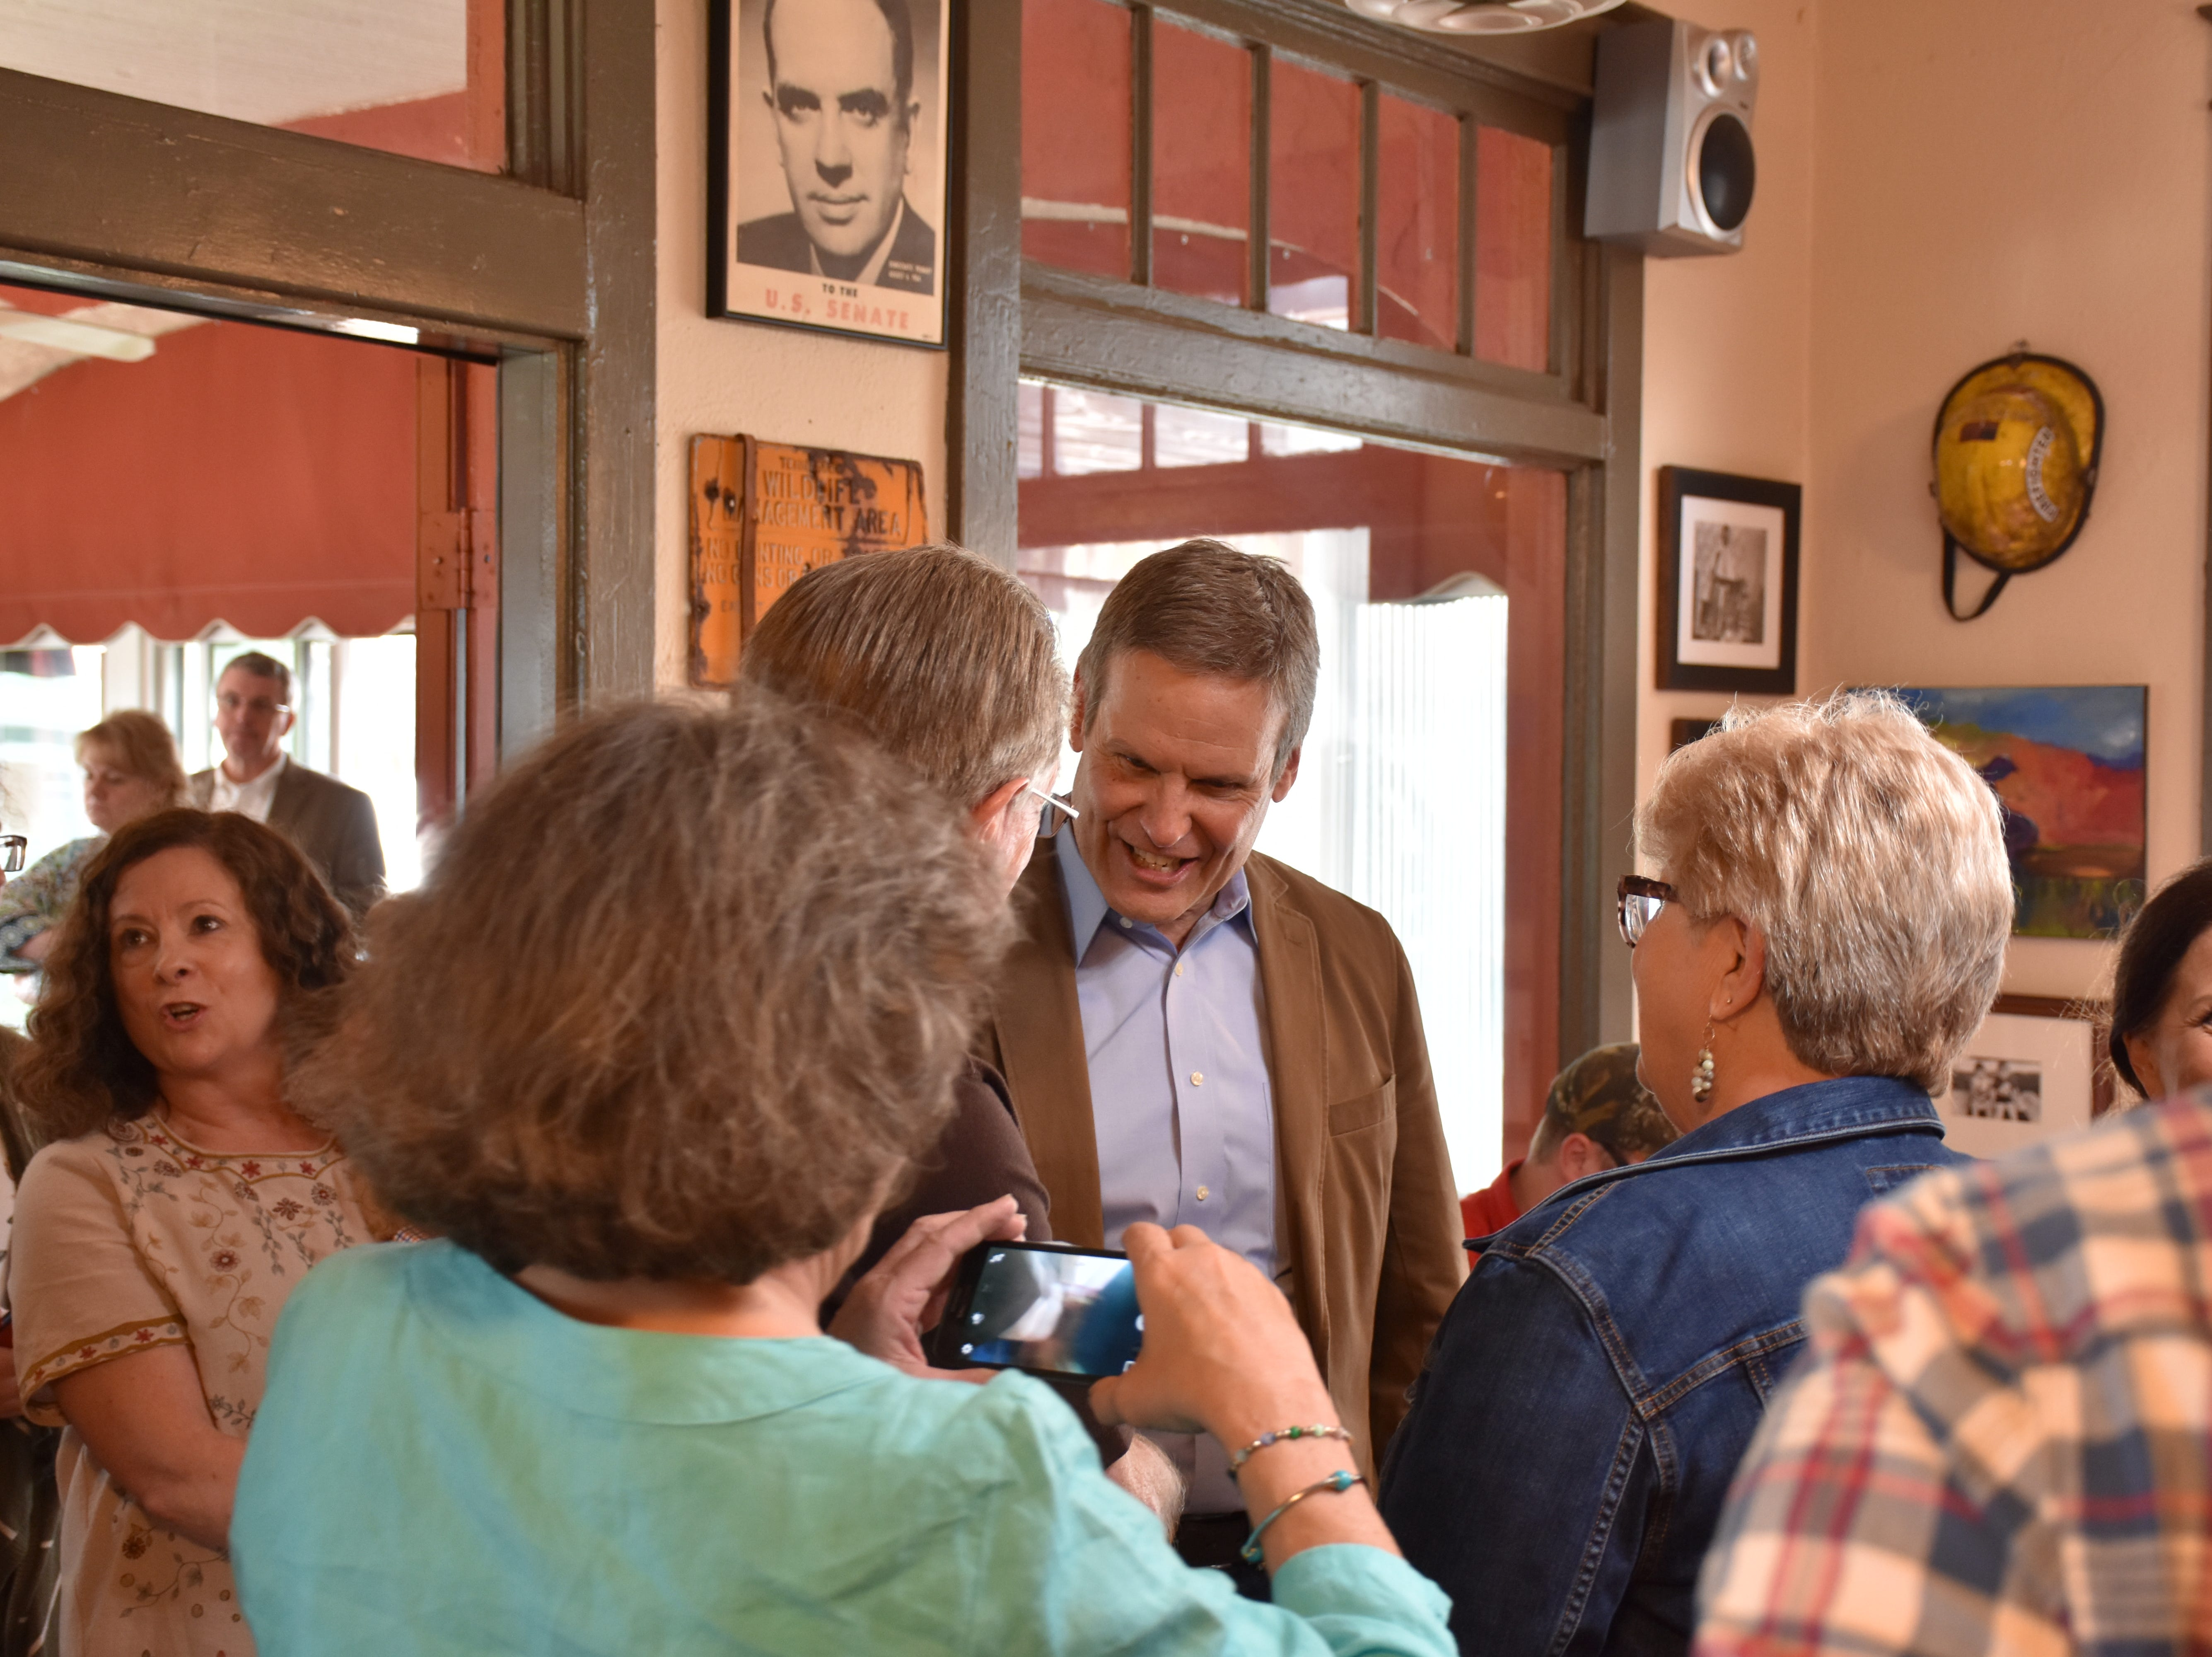 Gov. Bill Lee visits Downtown Dickson on Friday afternoon, stopping at Back Alley BBQ to talk to constituents and take questions.